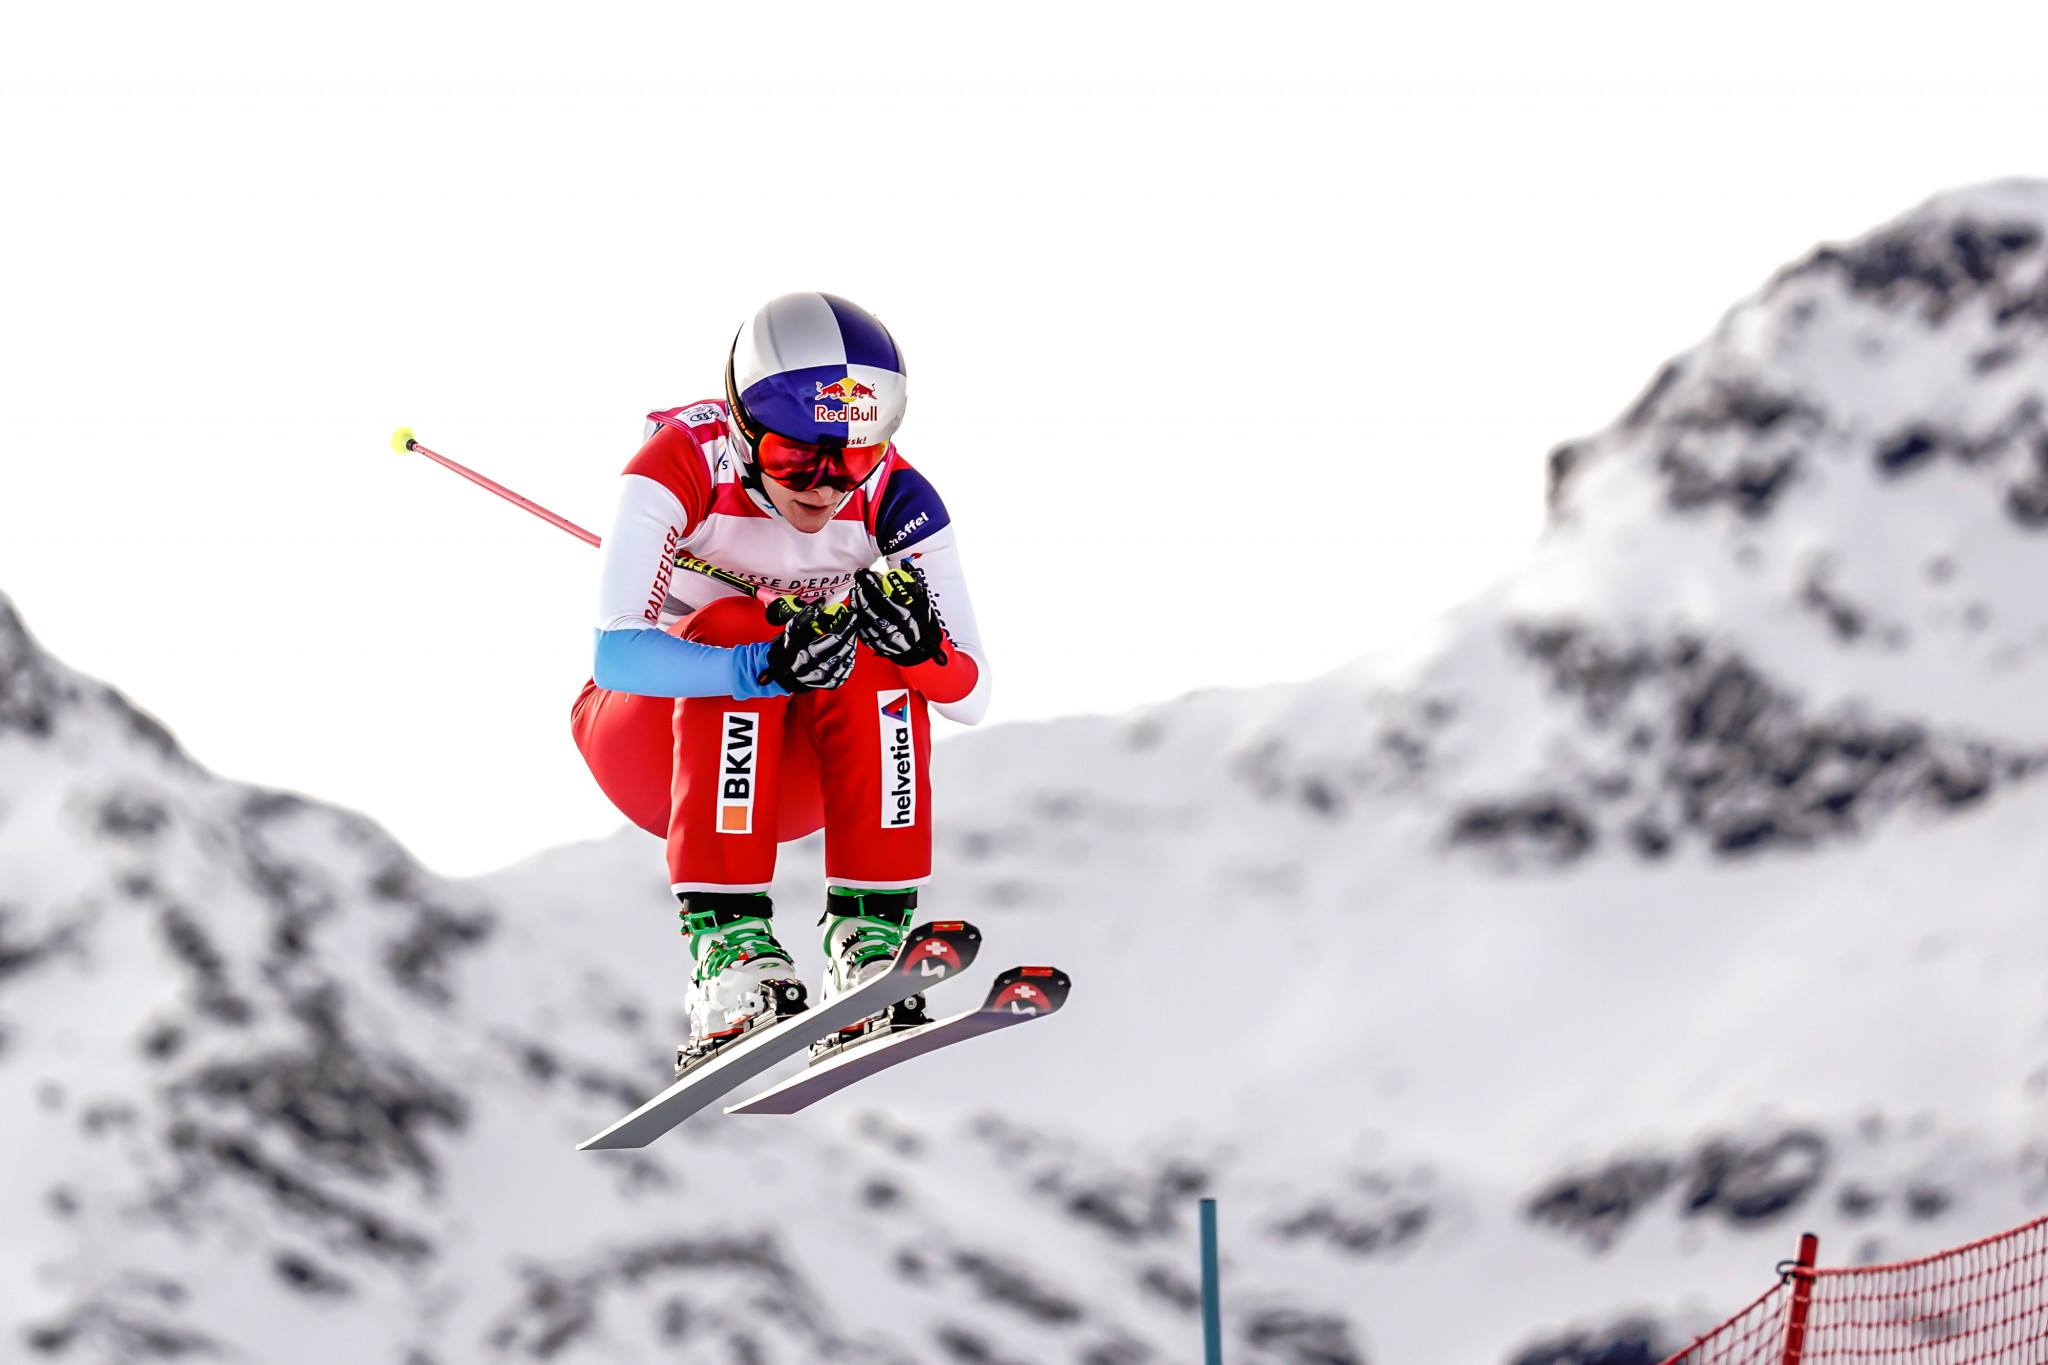 Smith impresses at season-opening FIS Ski Cross World Cup